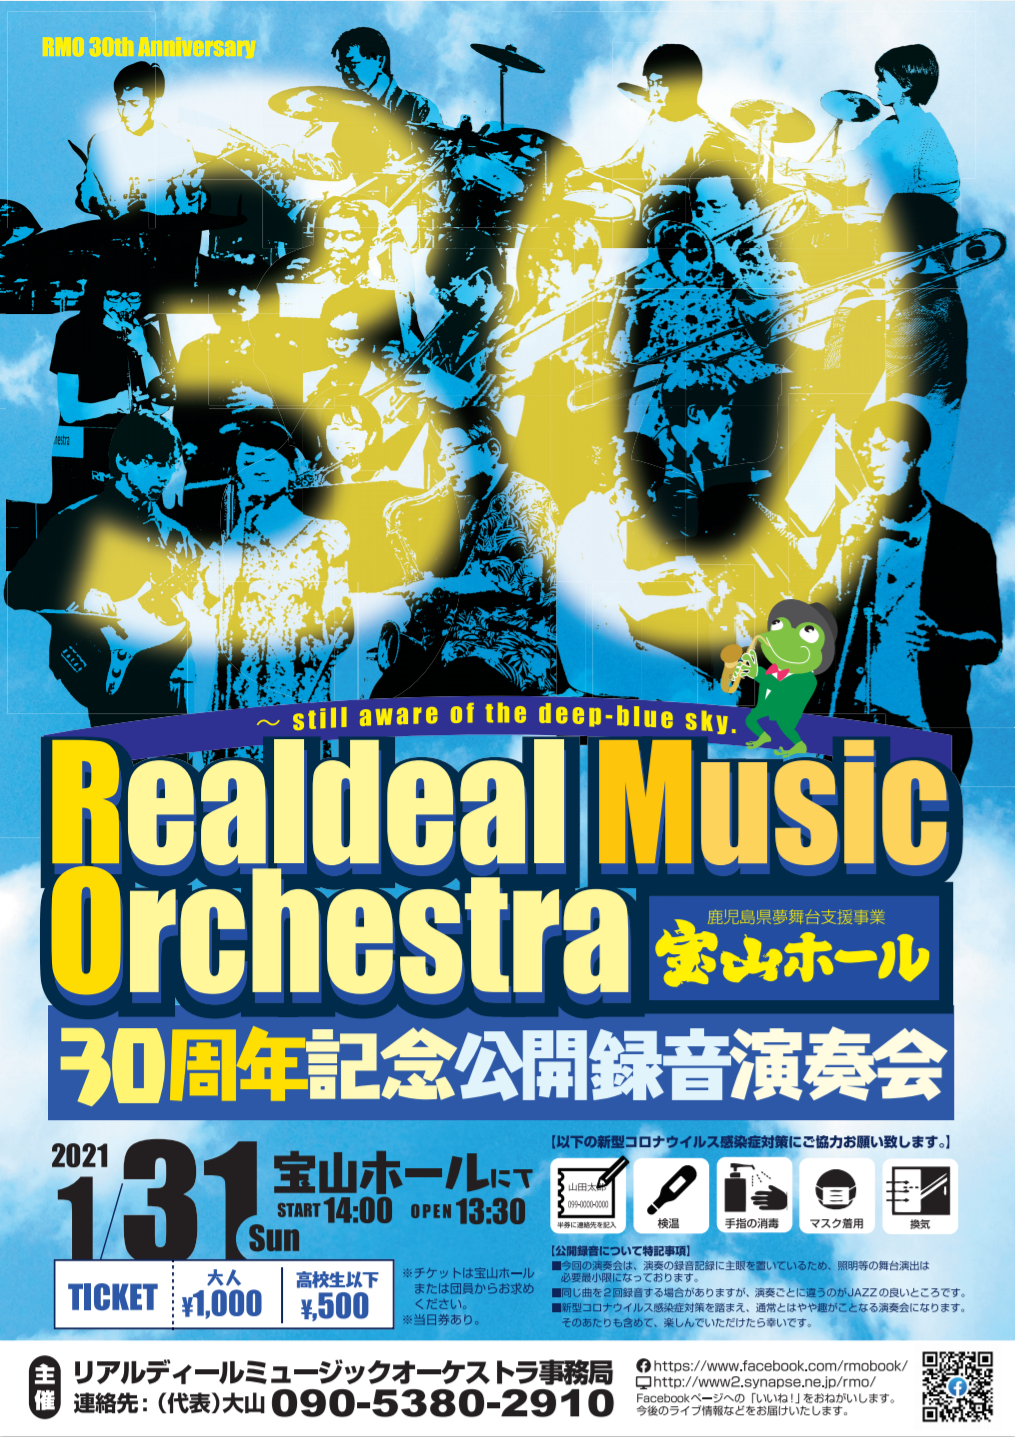 Realdeal Music Orchestra 30周年記念公開録音演奏会